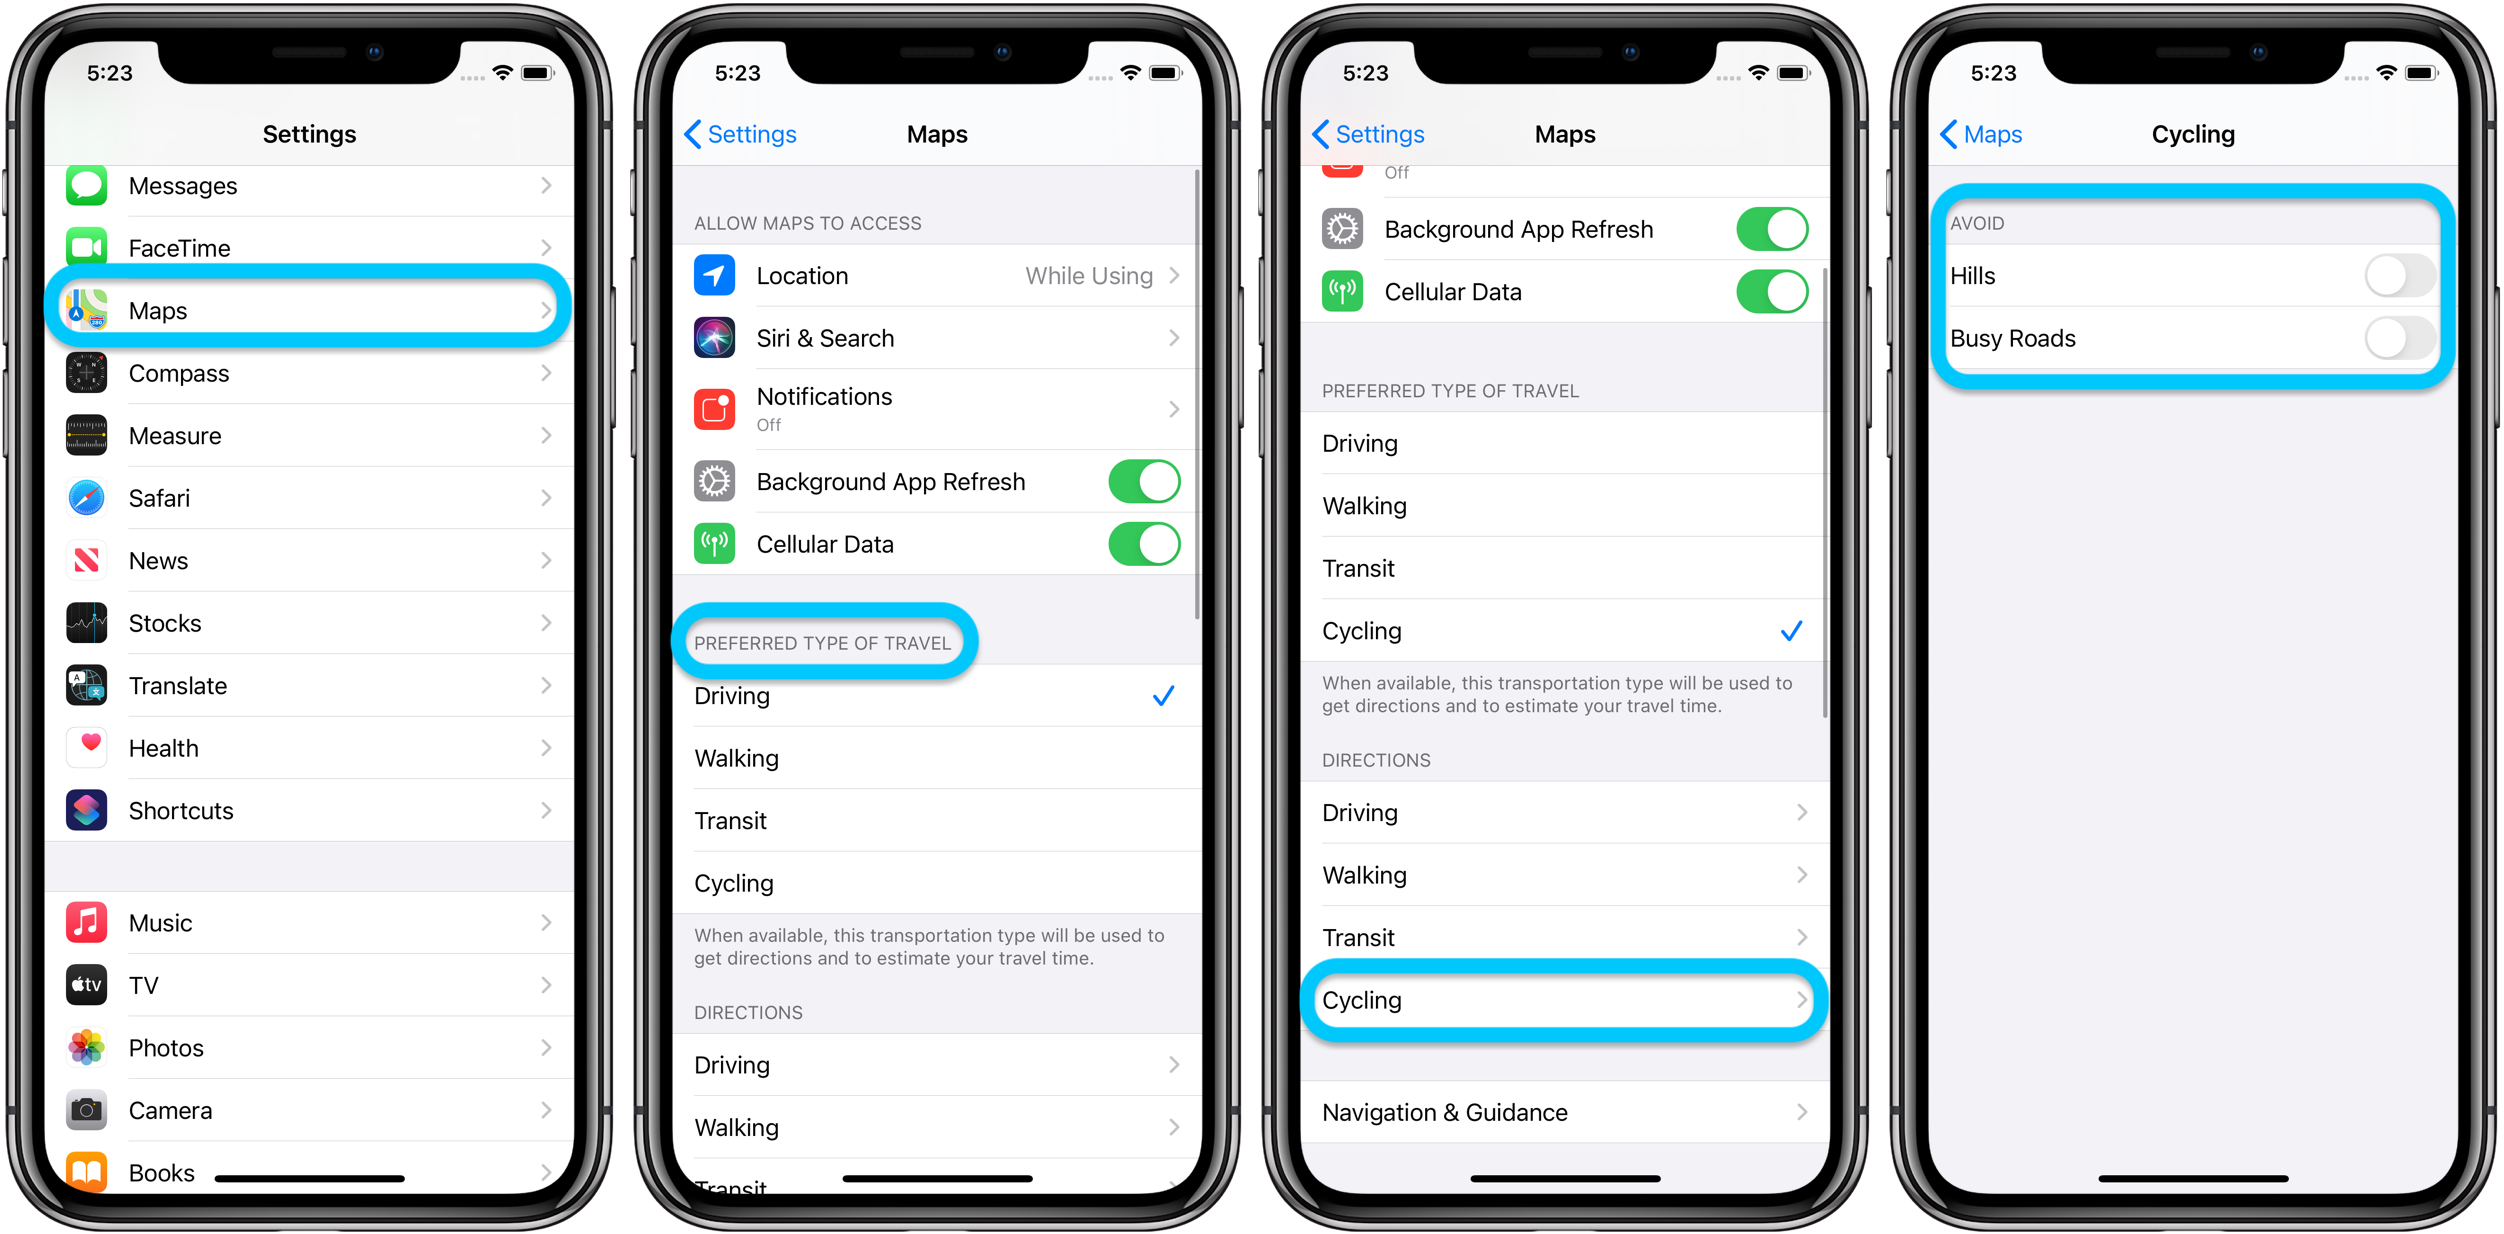 How to use Apple Maps cycling directions in iOS 14 walkthrough 2